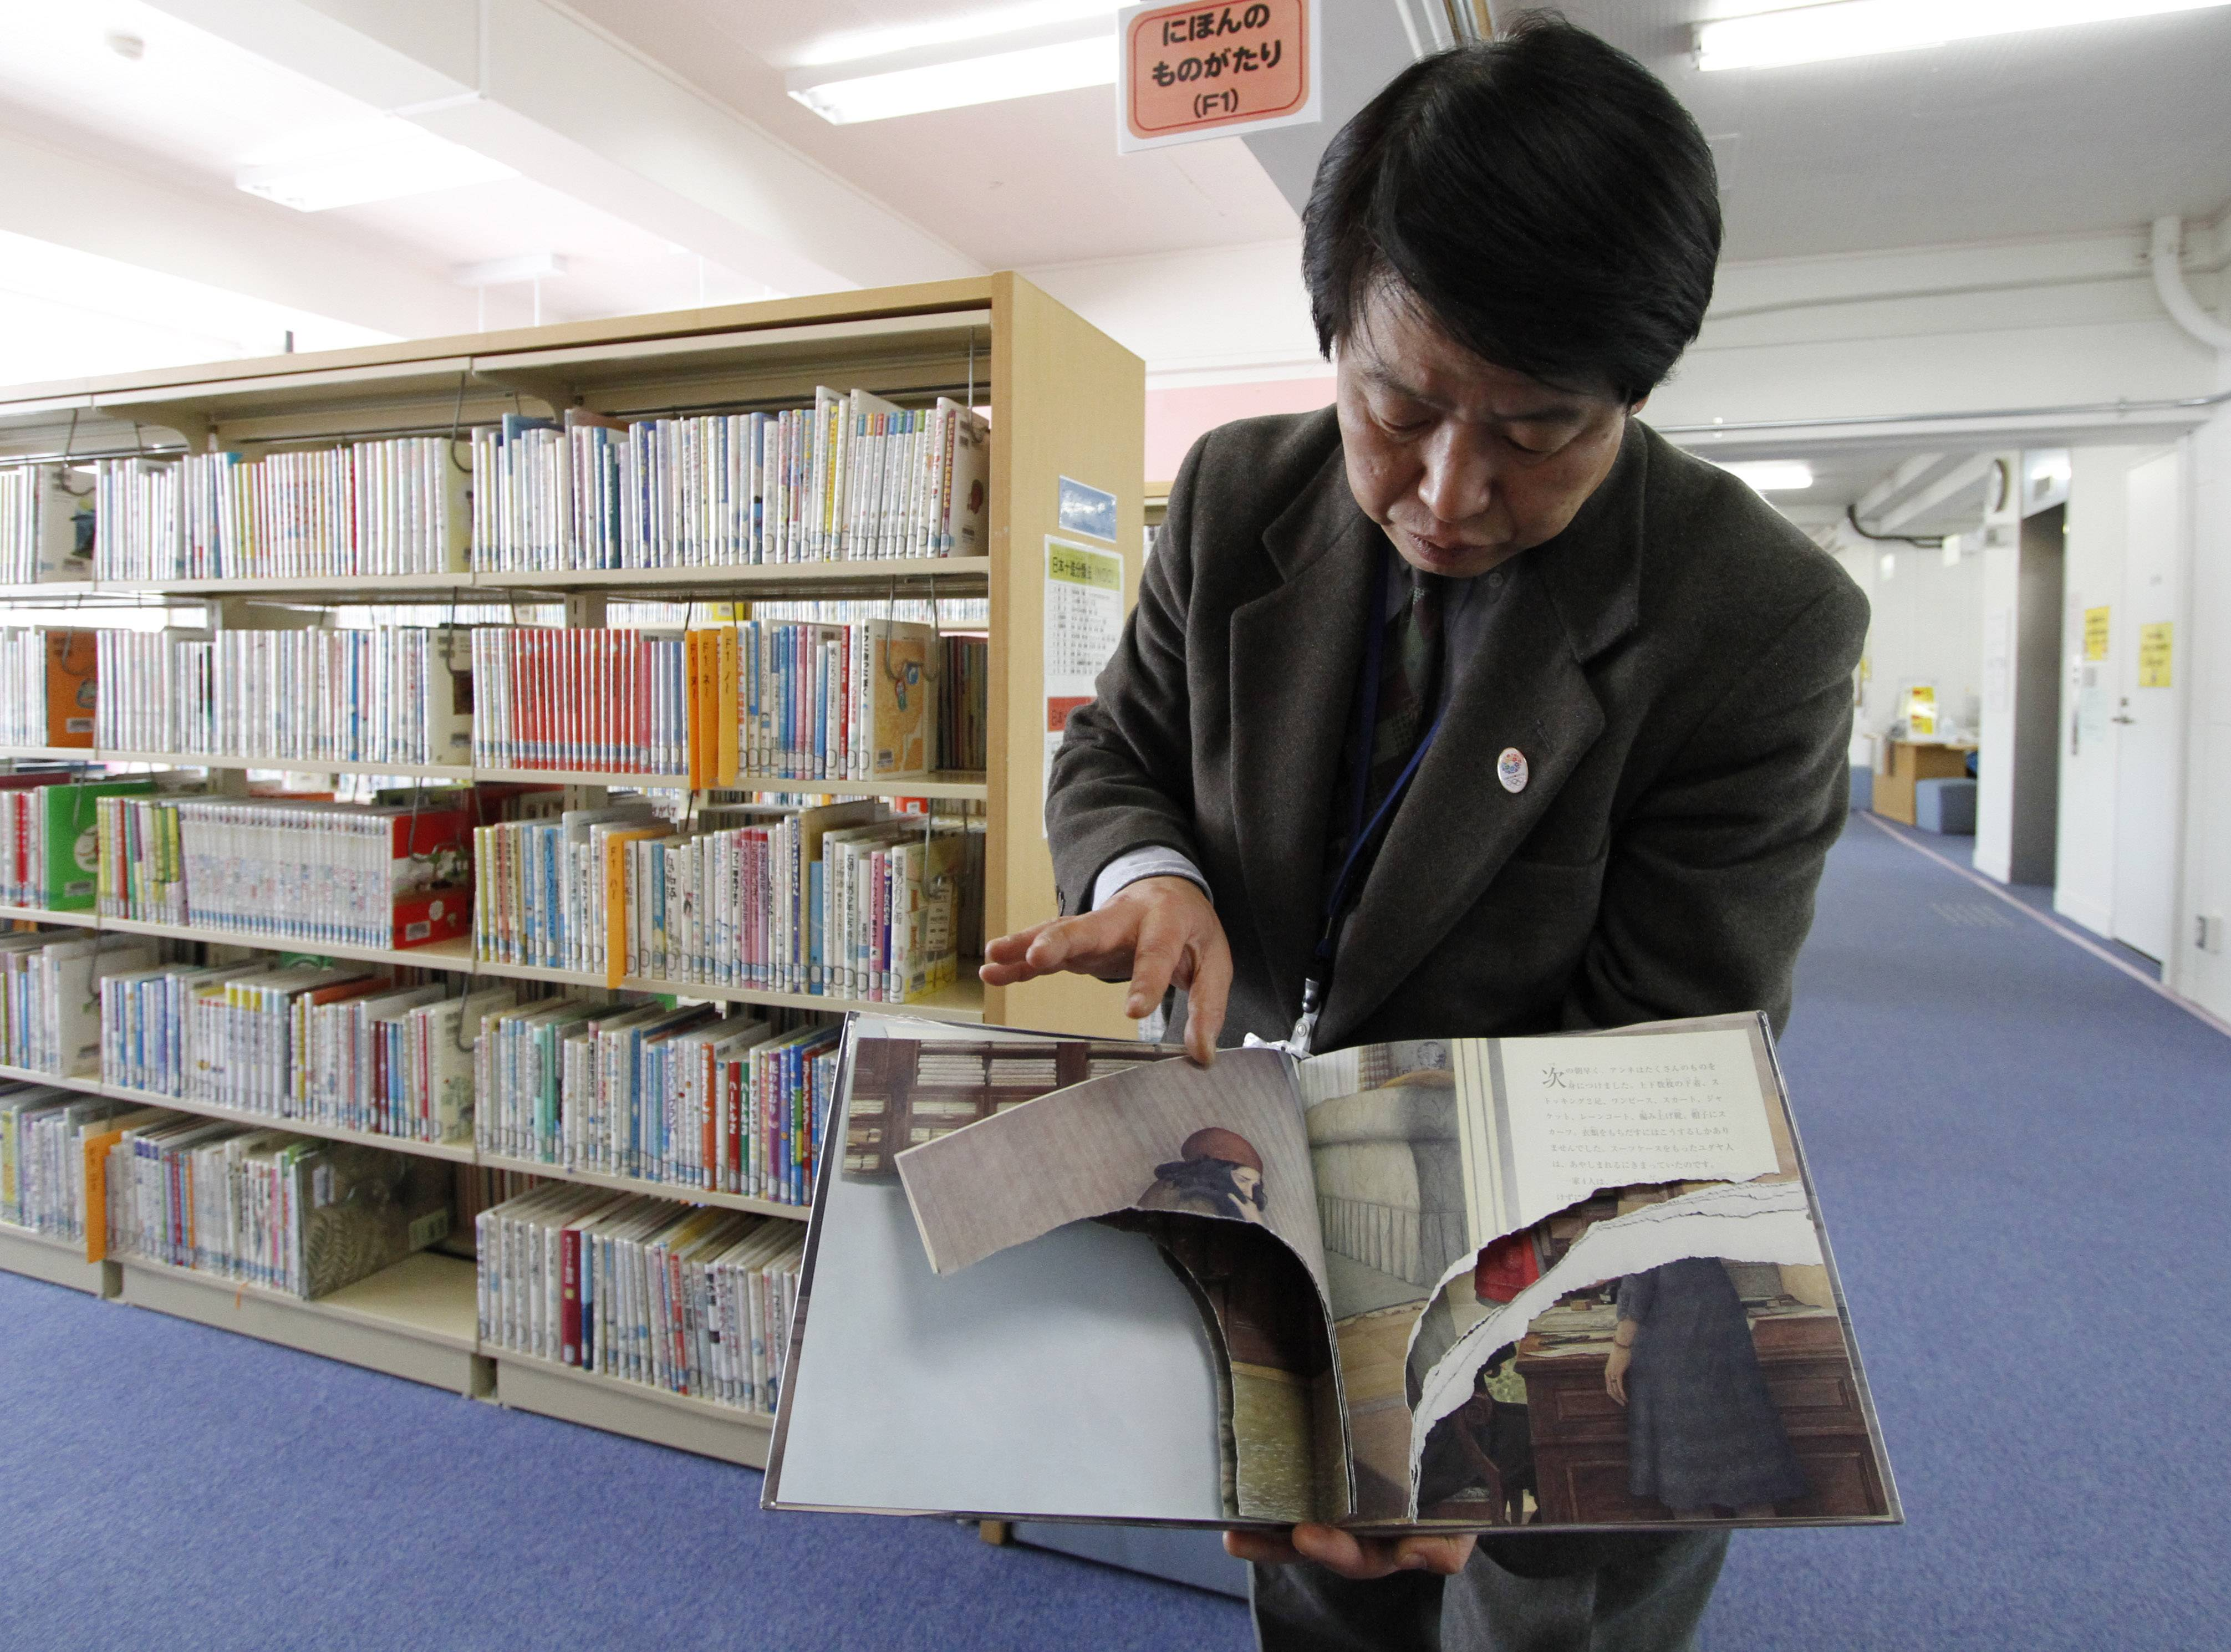 "A ripped copy of Anne Frank's ""Diary of a Young Girl"" picture book is shown by Shinjuku City Library Director Kotaro Fujimaki at the library in Tokyo Friday, Feb. 21, 2014. Tokyo Libraries said on Friday that hundreds of copies of Anne Frank's diary and related books have been found vandalized across the city's libraries in the last month, sparking fears of an anti-Semitic motive."